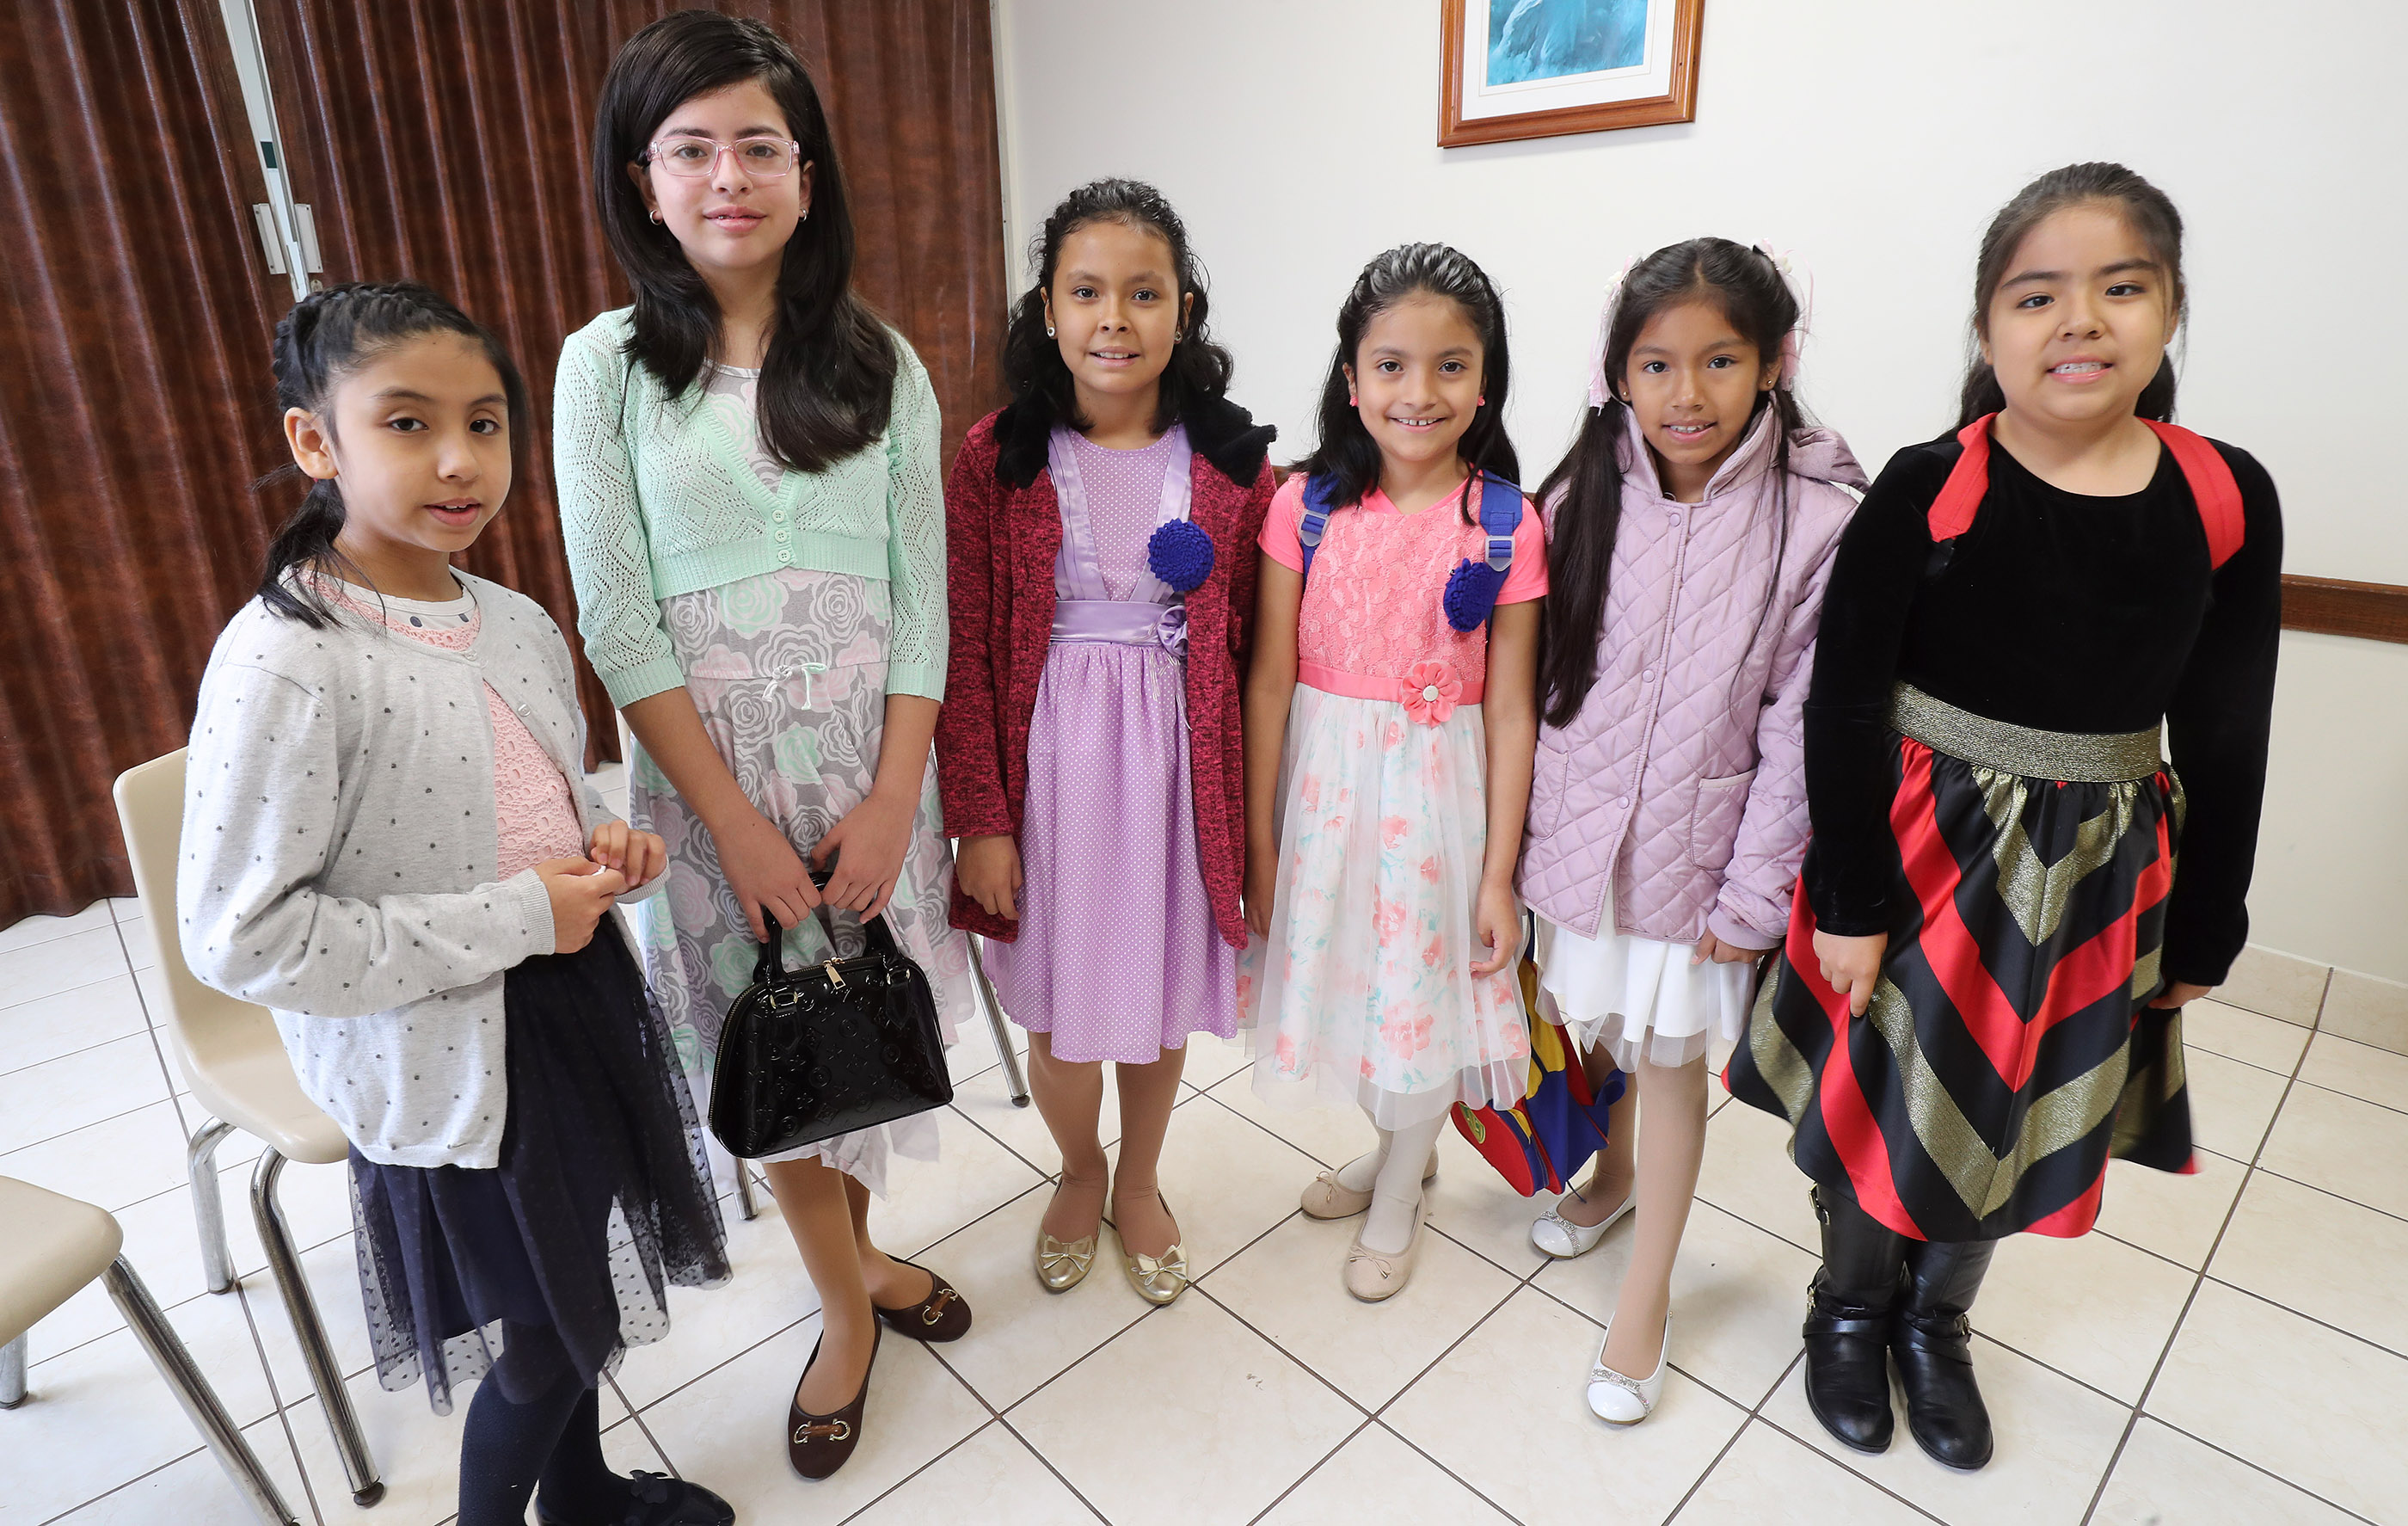 Primary children of The Church of Jesus Christ of Latter-day Saints pose for a photo prior to class in Lima, Peru, on Oct. 21, 2018.